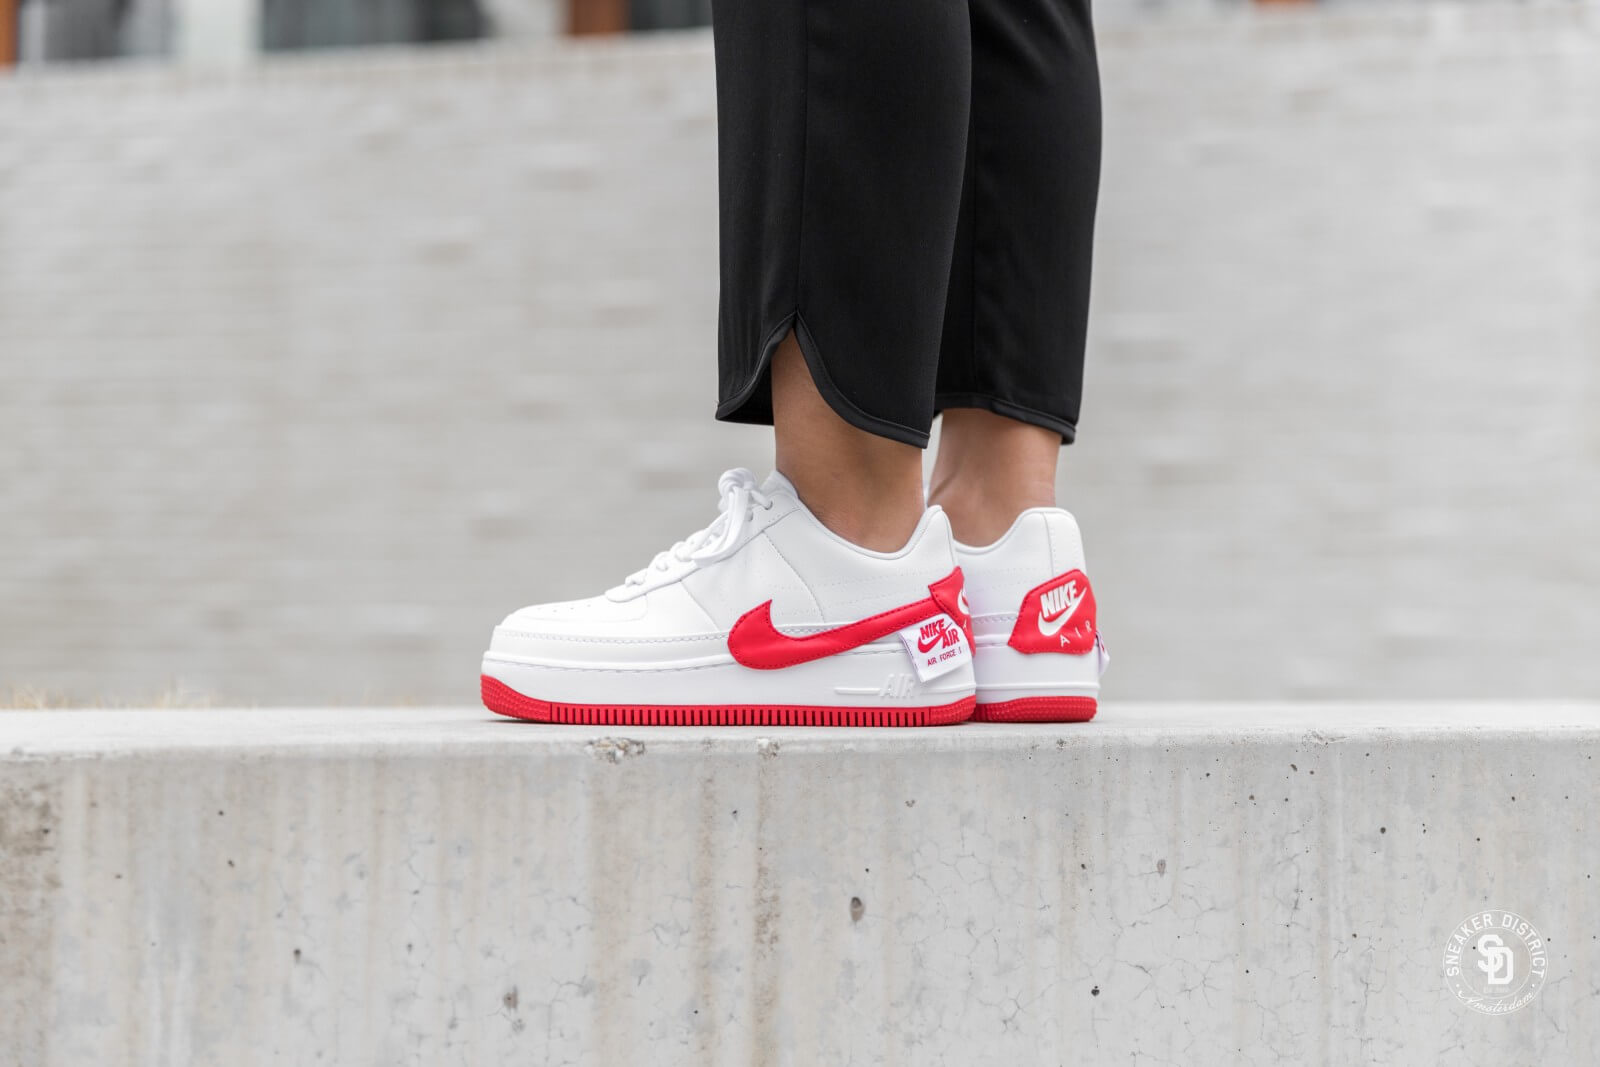 Nike Air Force 1 Jester XX White/University Red - AO1220-106